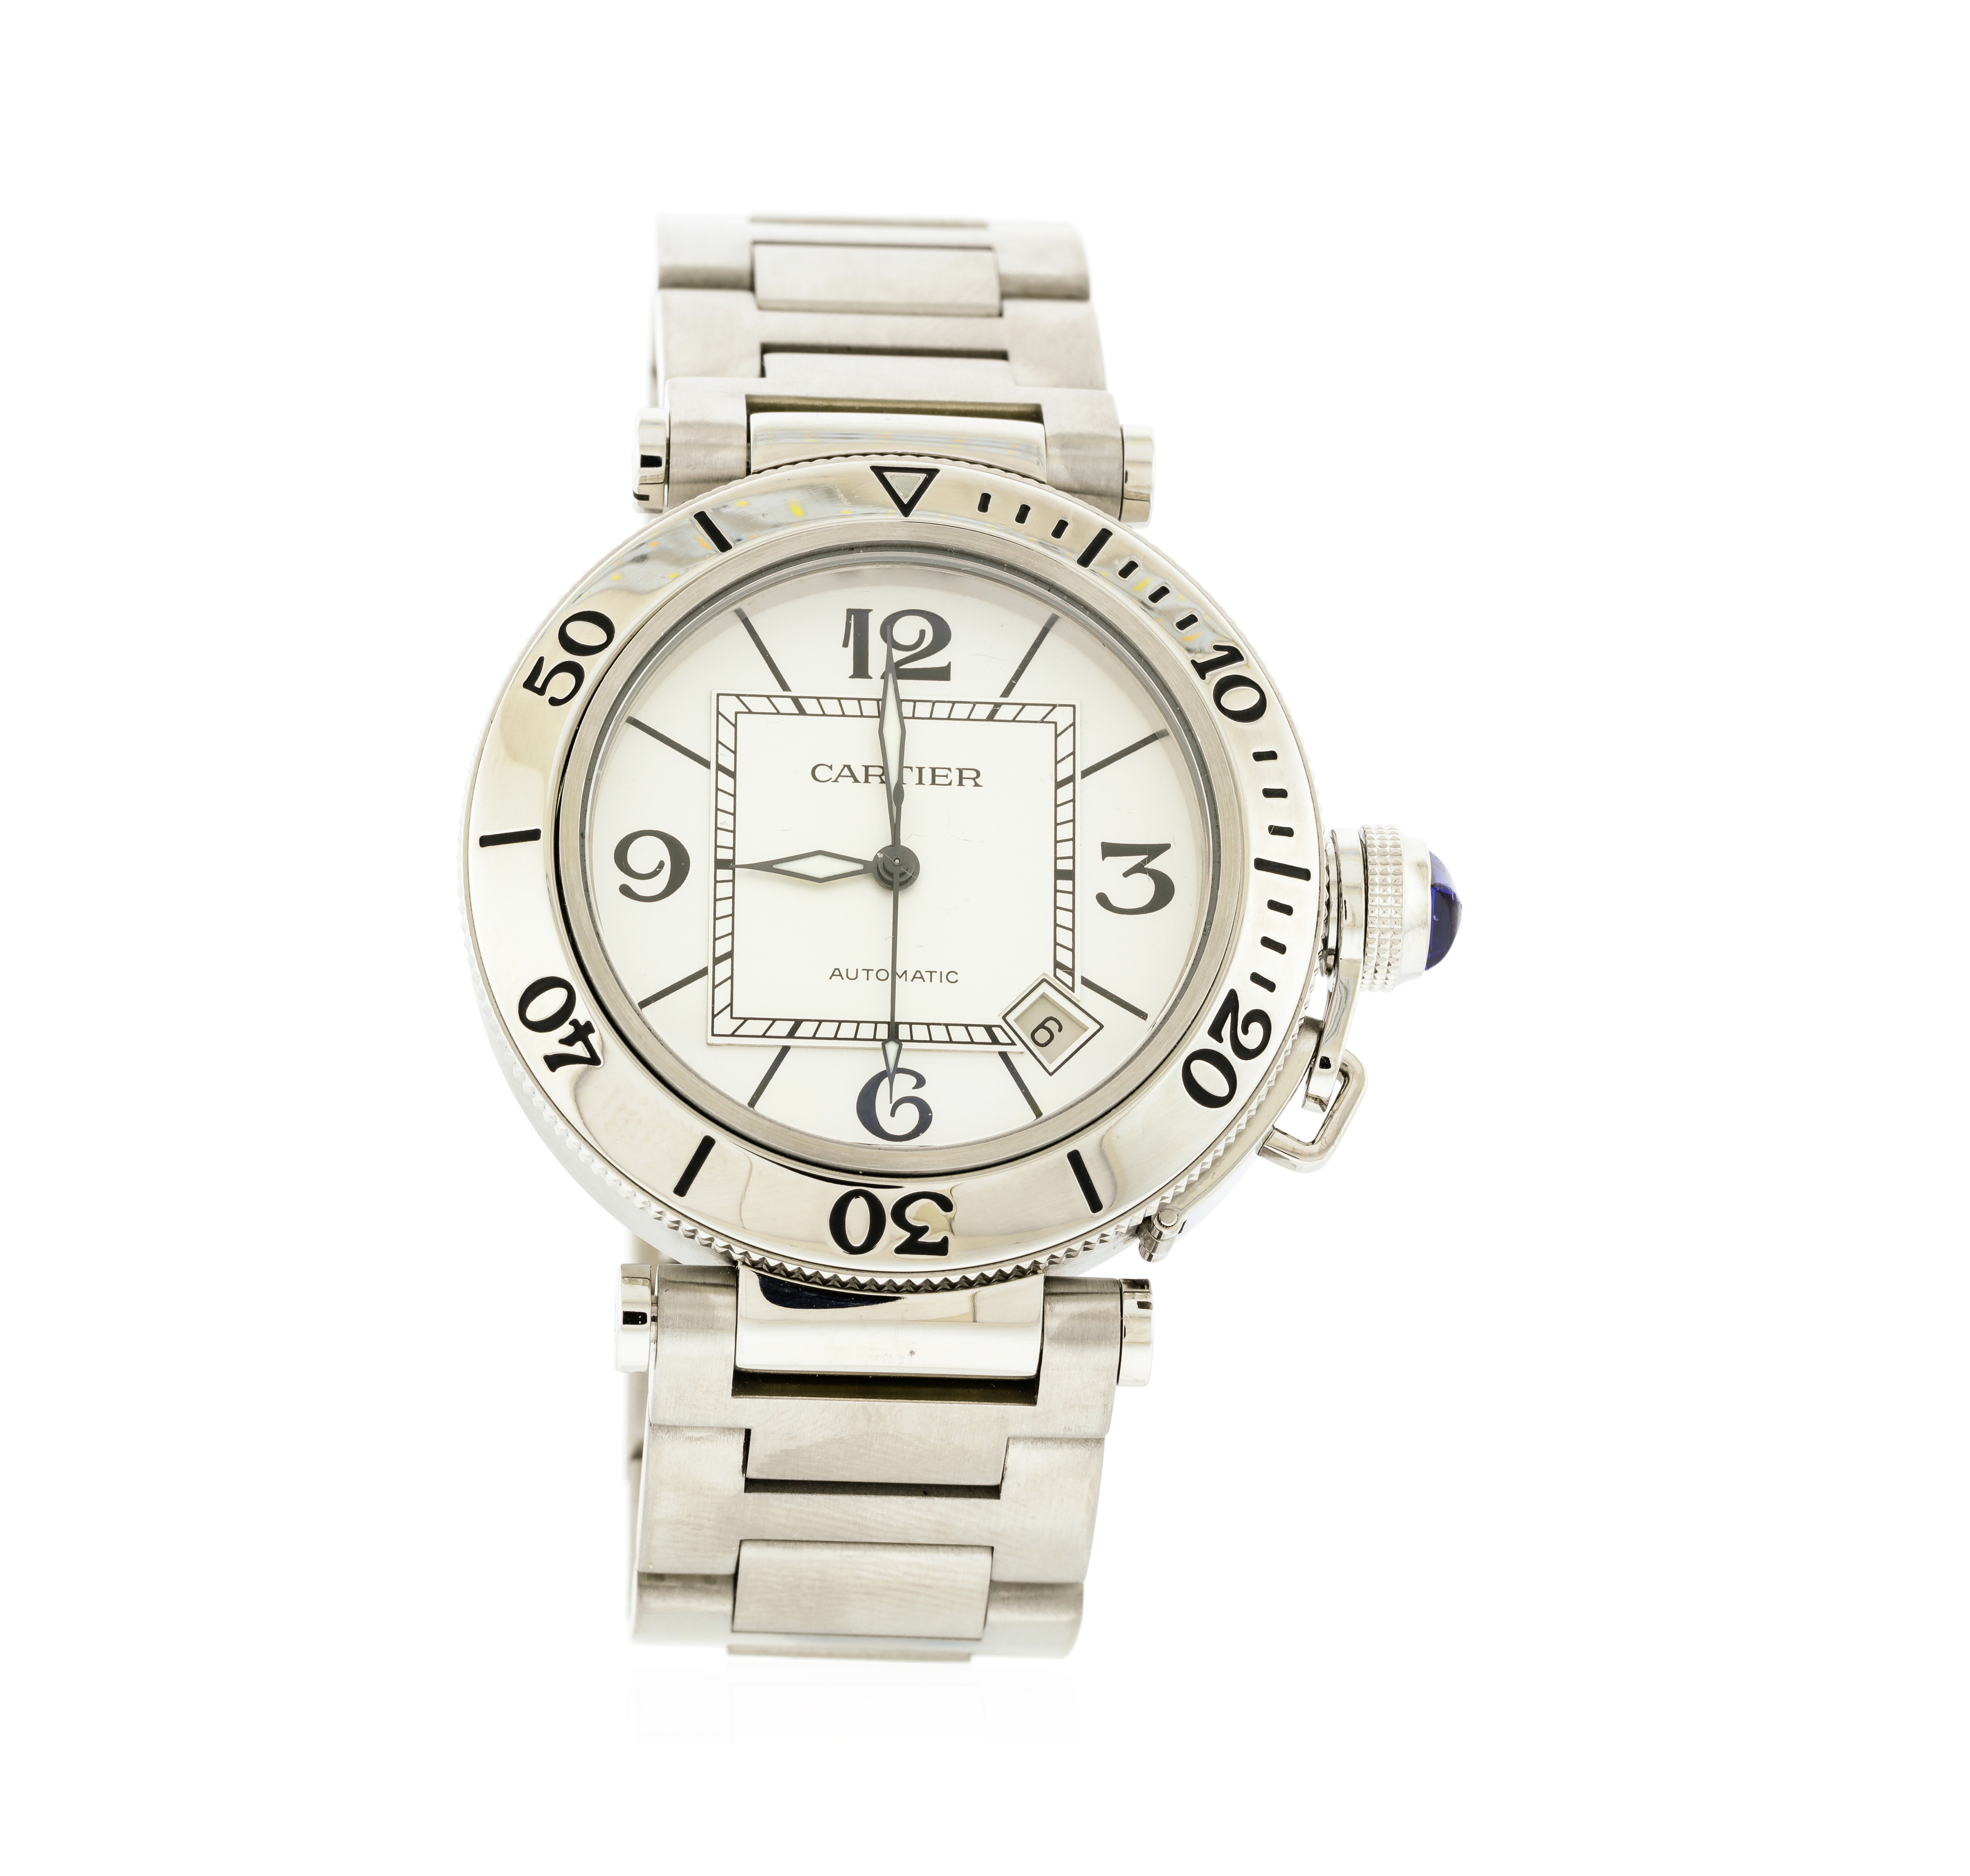 6fc96706a453 Image 1 of 5. Cartier Pasha Seatimer Stainless Steel Silver Dial Men s Watch.  Listing ID  12294364 ...